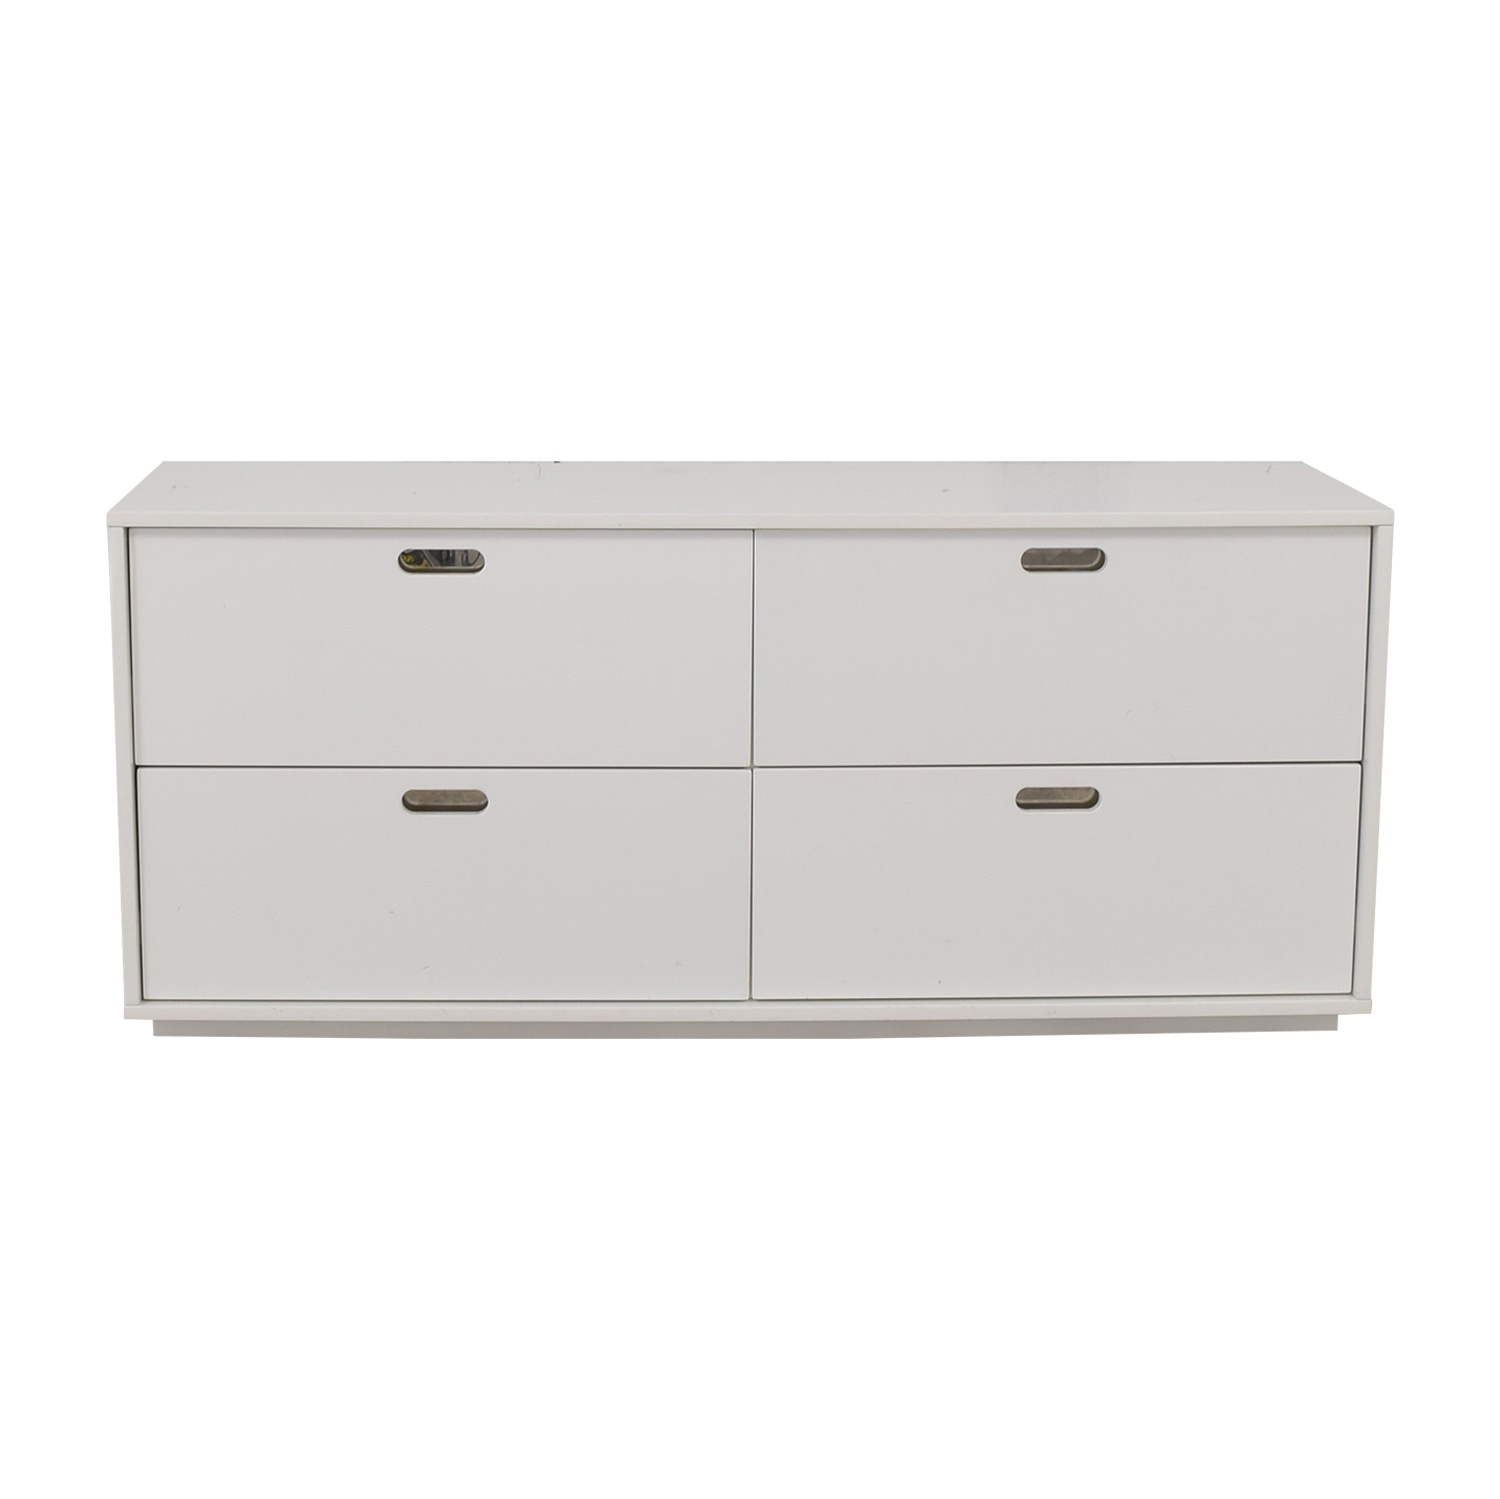 CB2 CB2 White Four-Drawer Low Dresser discount